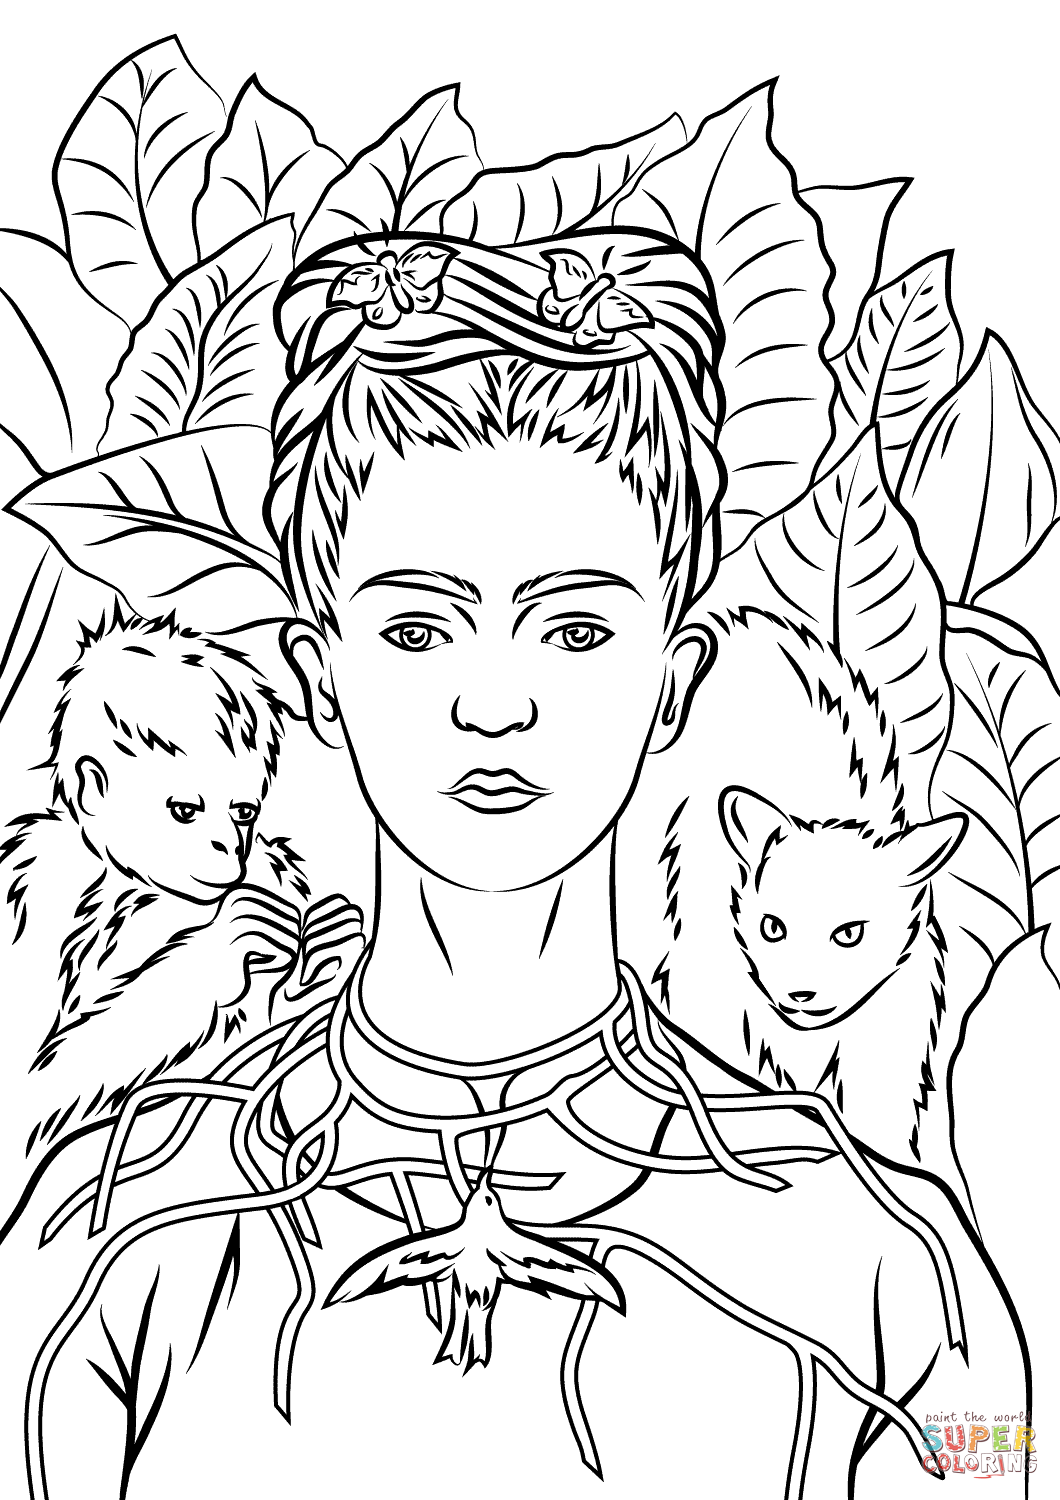 Worksheets Frida Kahlo Worksheets self portrait with necklace of thorns by frida kahlo coloring page from category